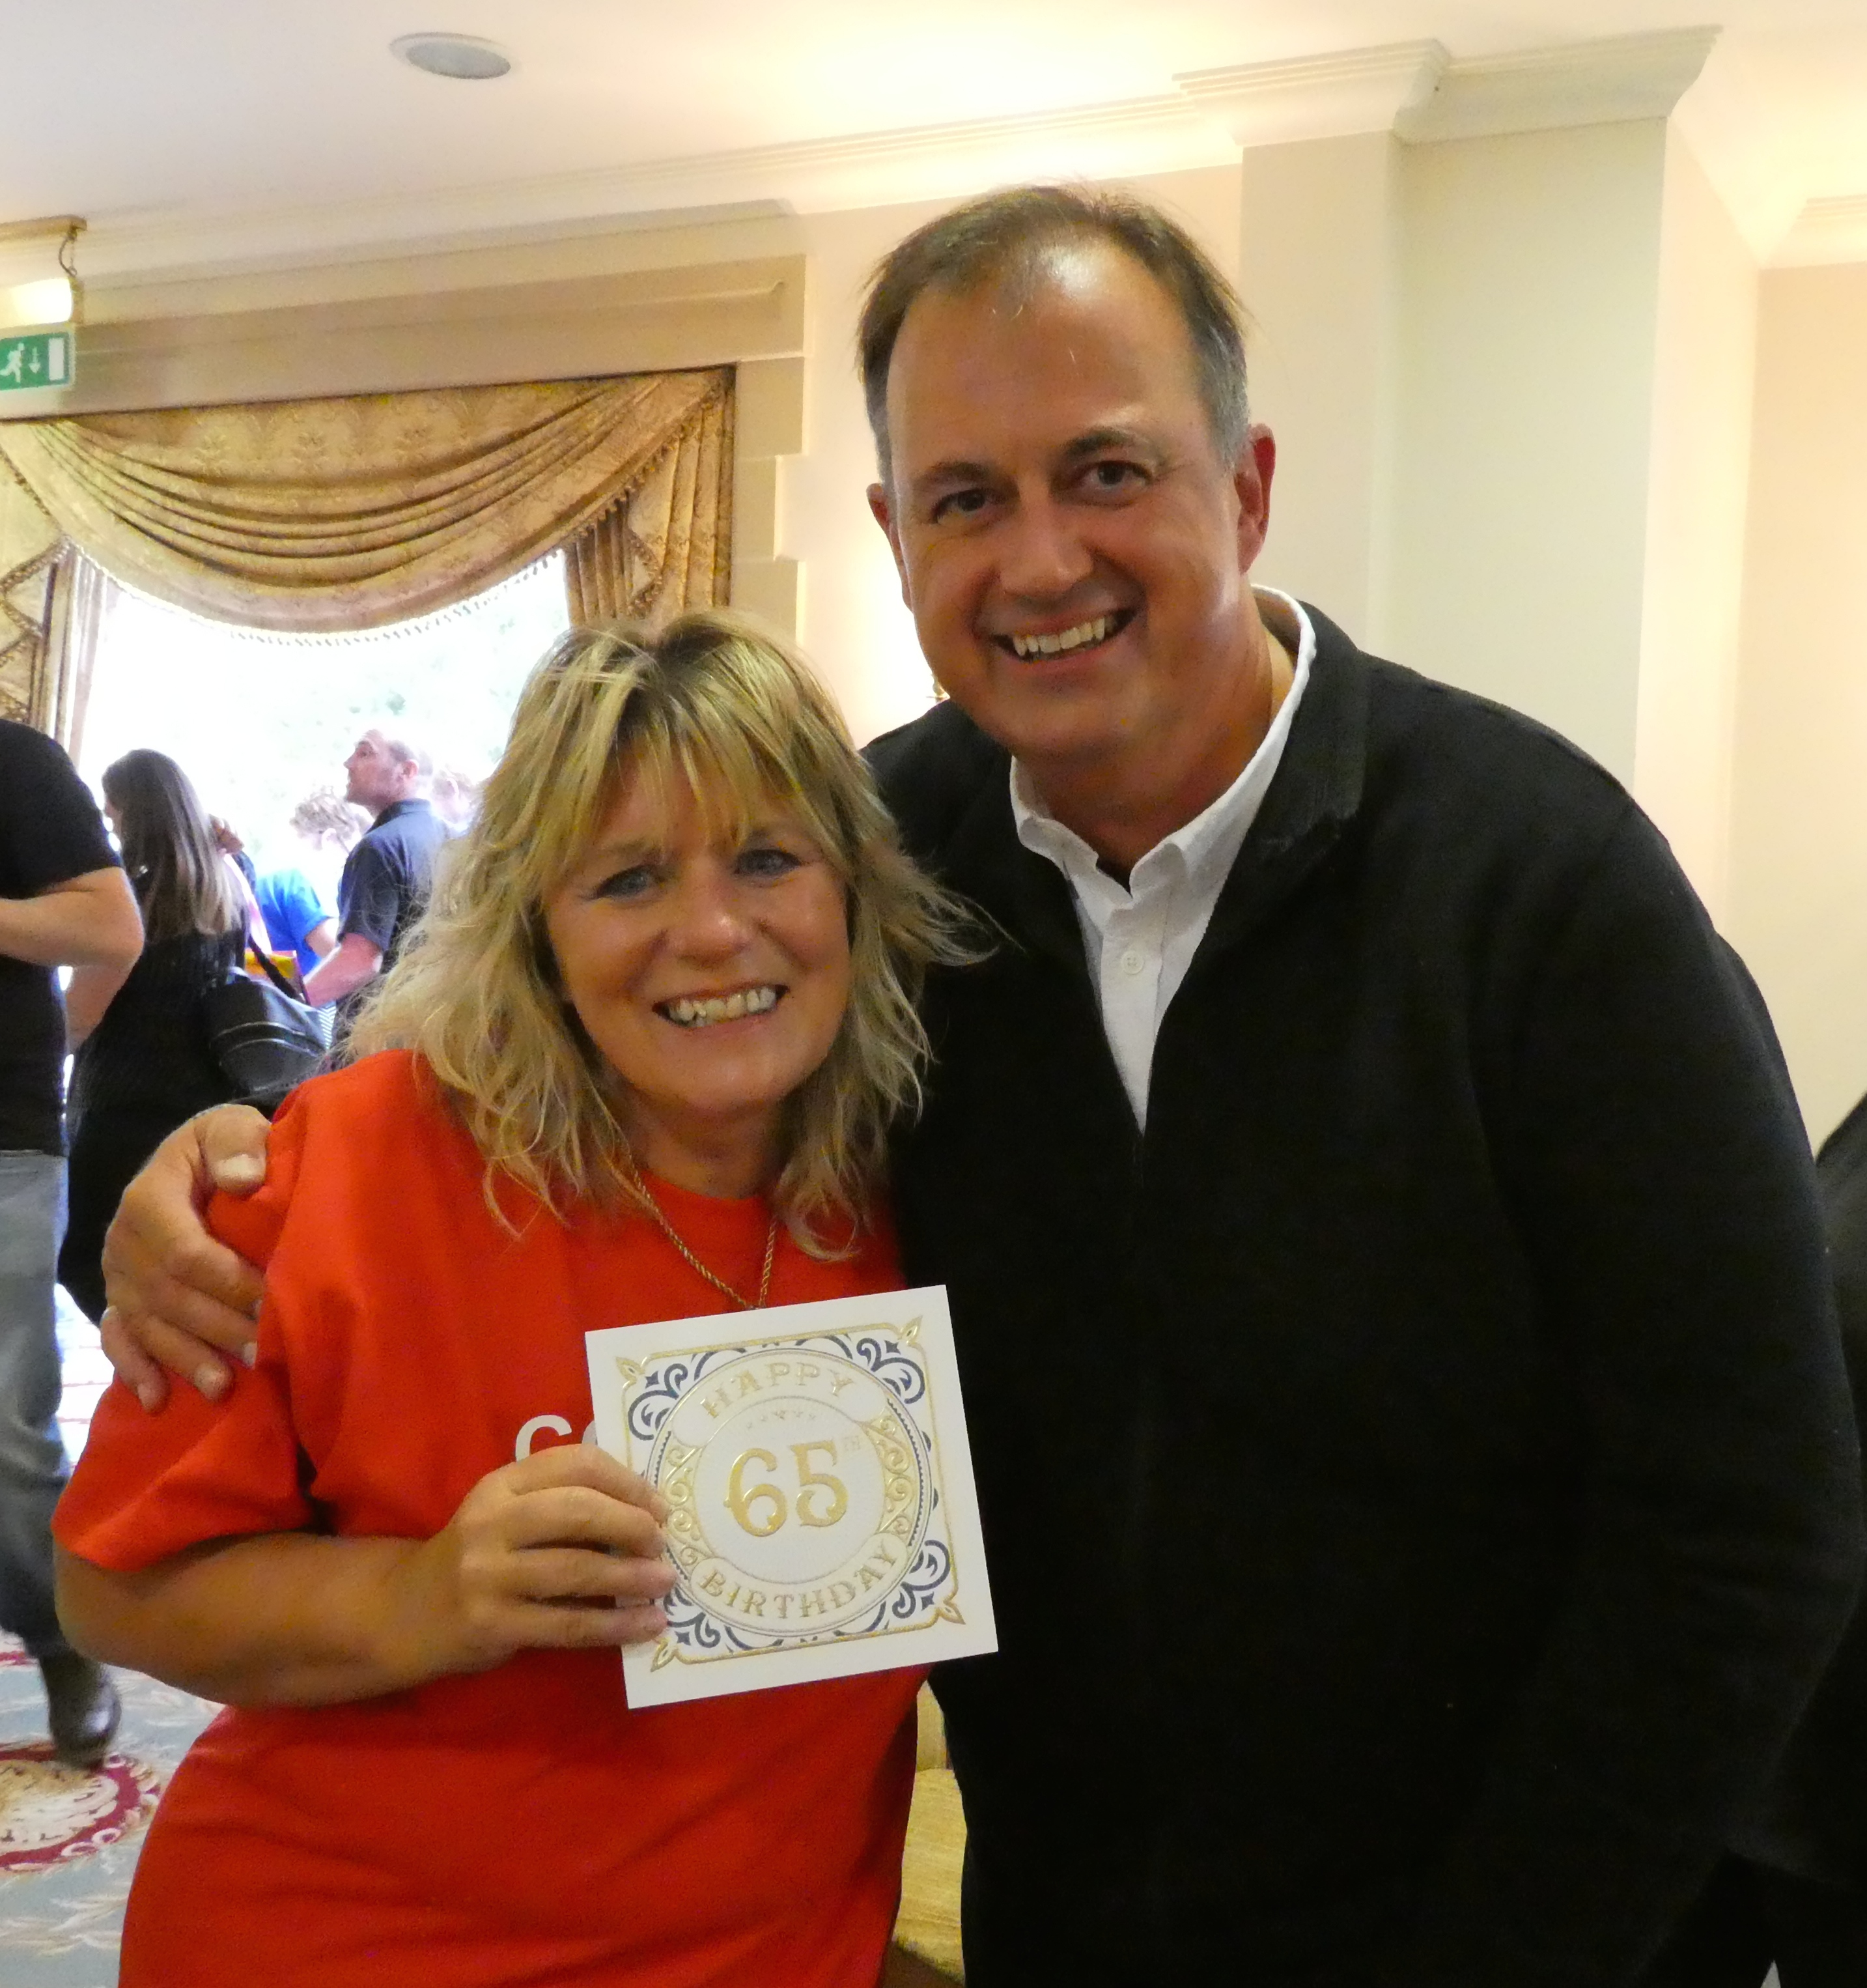 Paul Woodmansterne with Caroline Lawson, valued member of the publisher's sales team receiving one of the special company 65th cards.